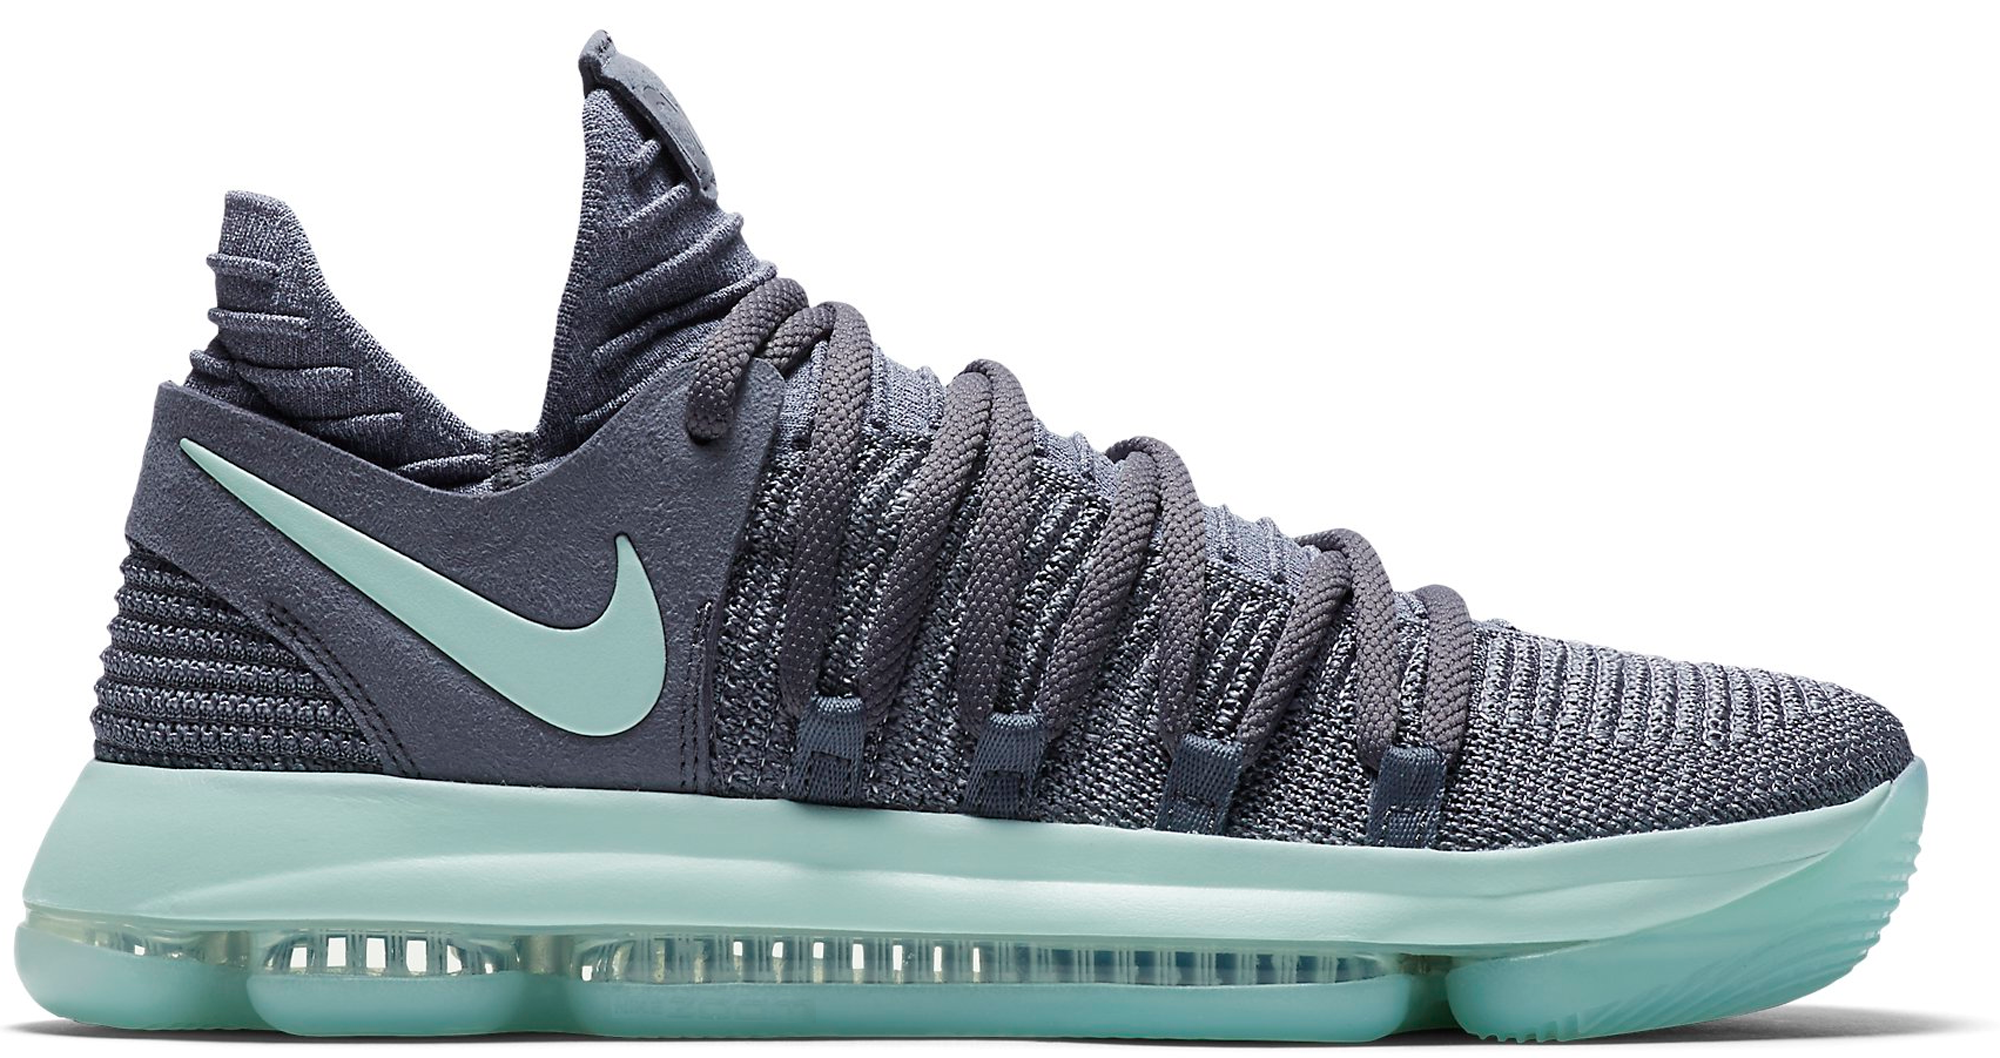 23f1f487d6a7fb Nike Zoom KD 10 Cool Grey Igloo - StockX News